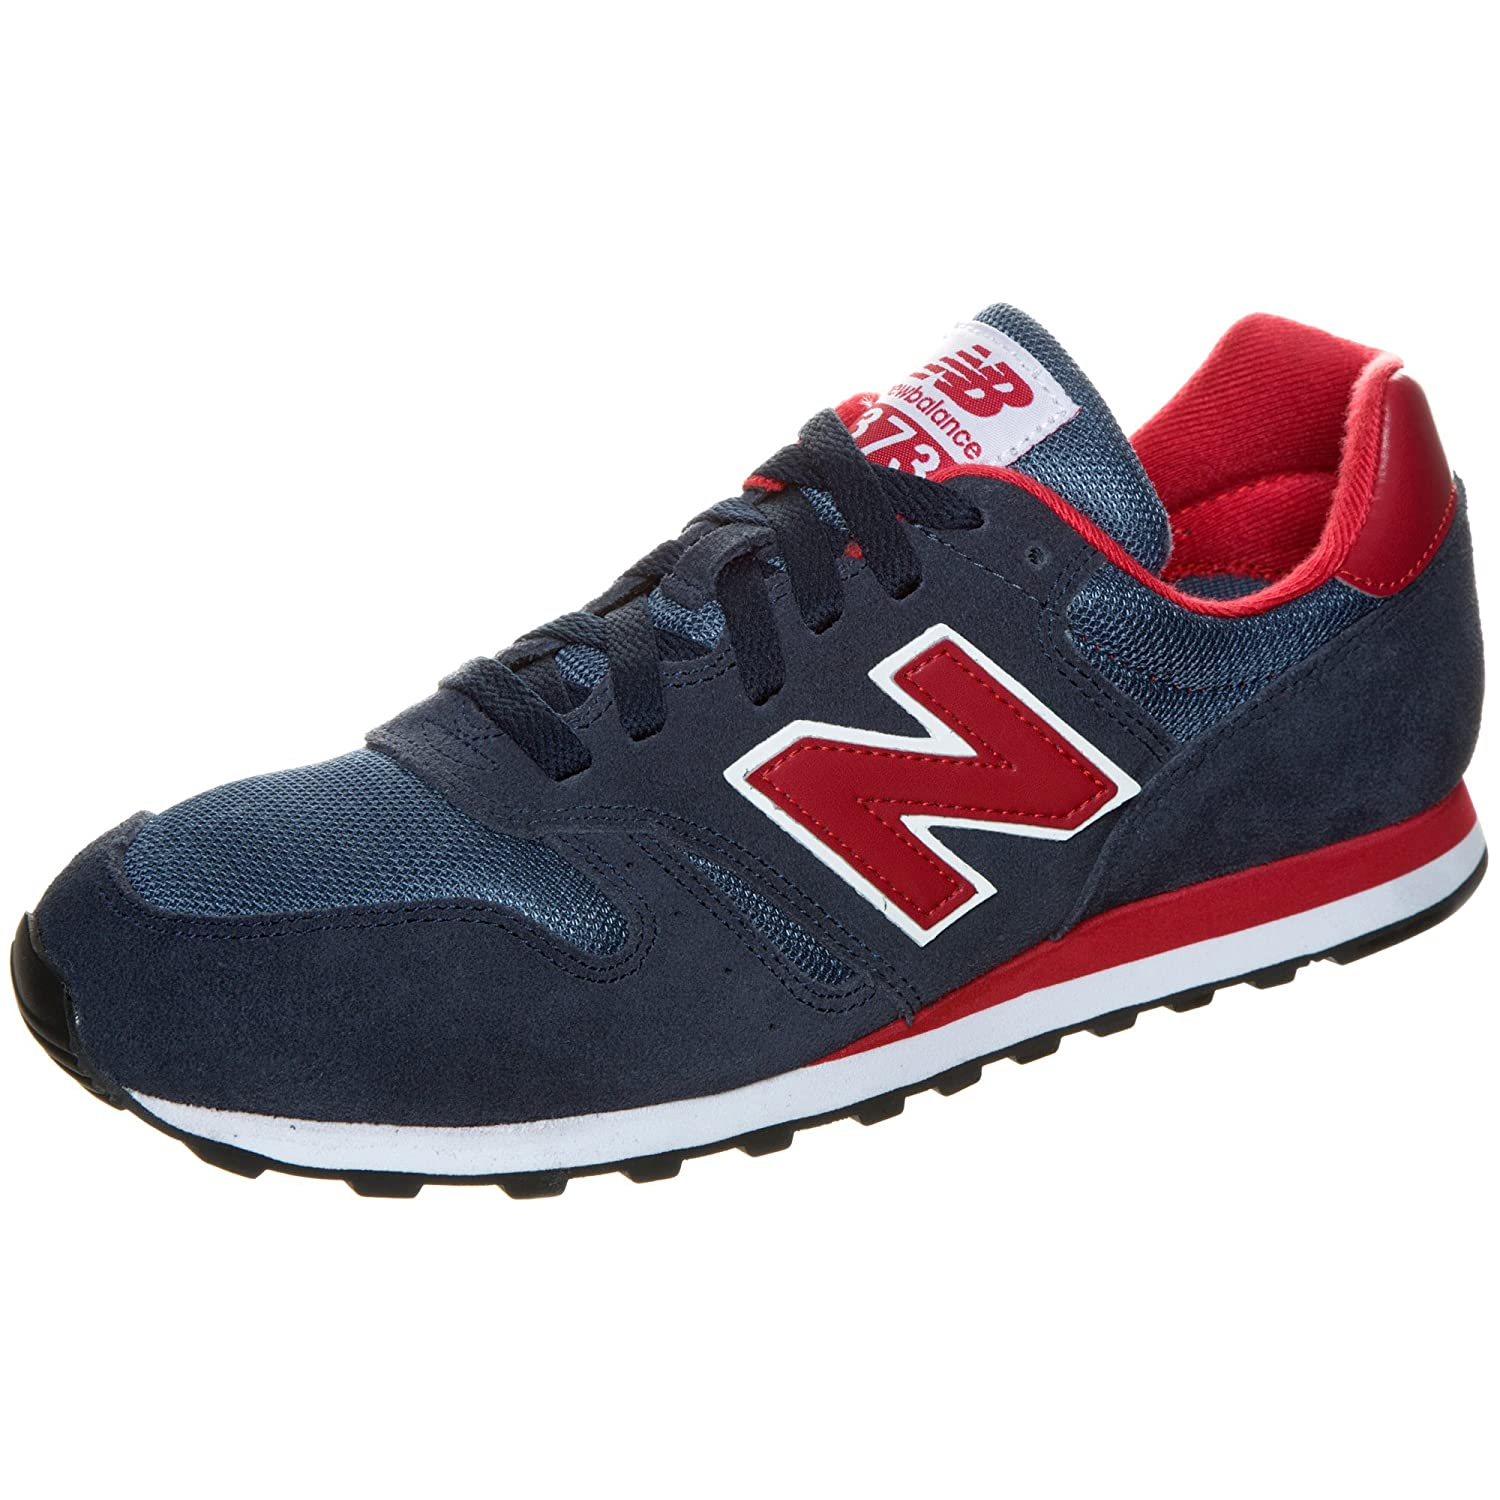 New Balance 373, Unisex Adults' Trainers